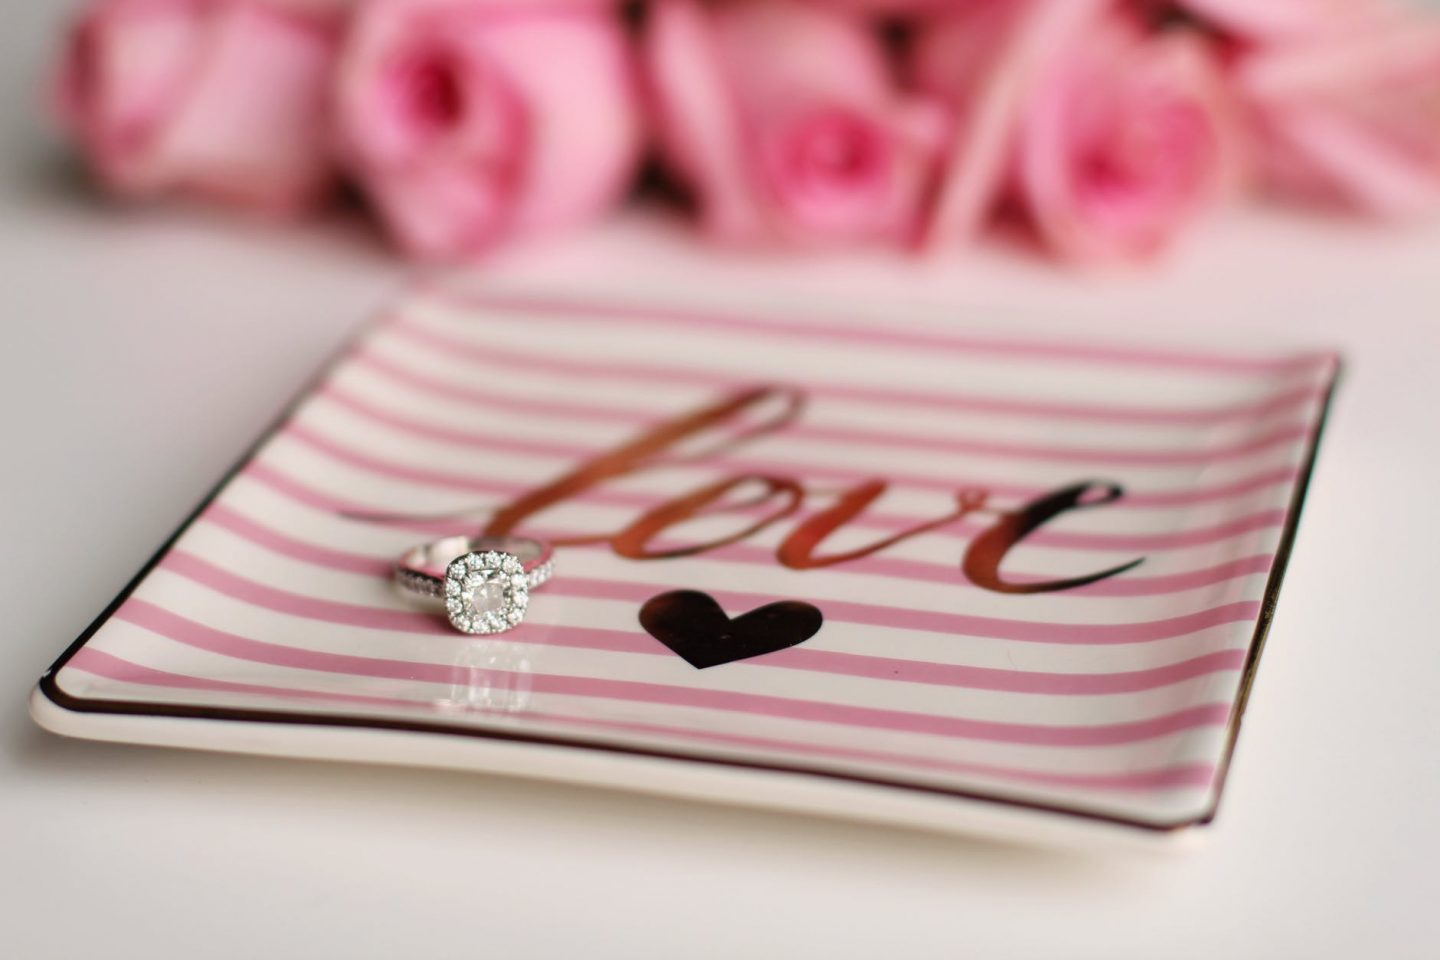 Silver diamond ring on a pink and white plate with 'love' and a picture of a heart on it.